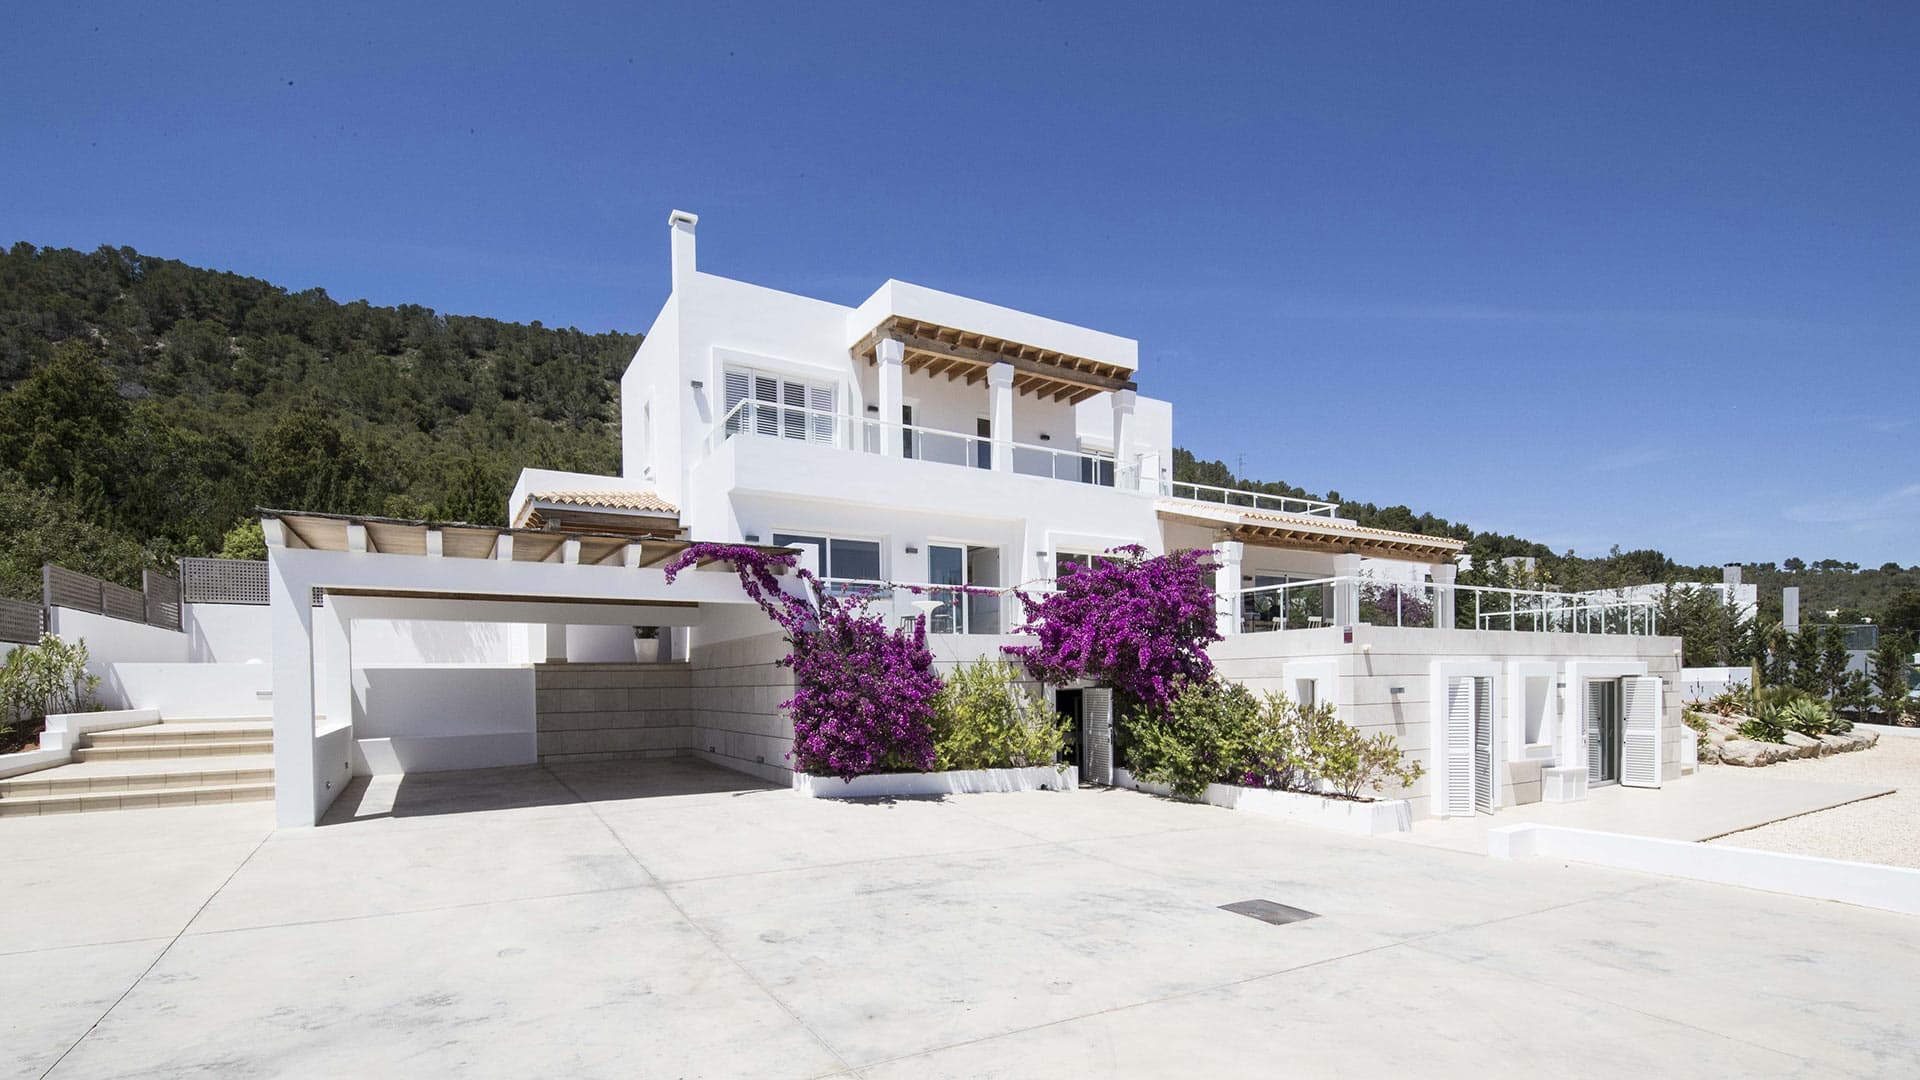 Villa Villa Buddhilo, Rental in Ibiza